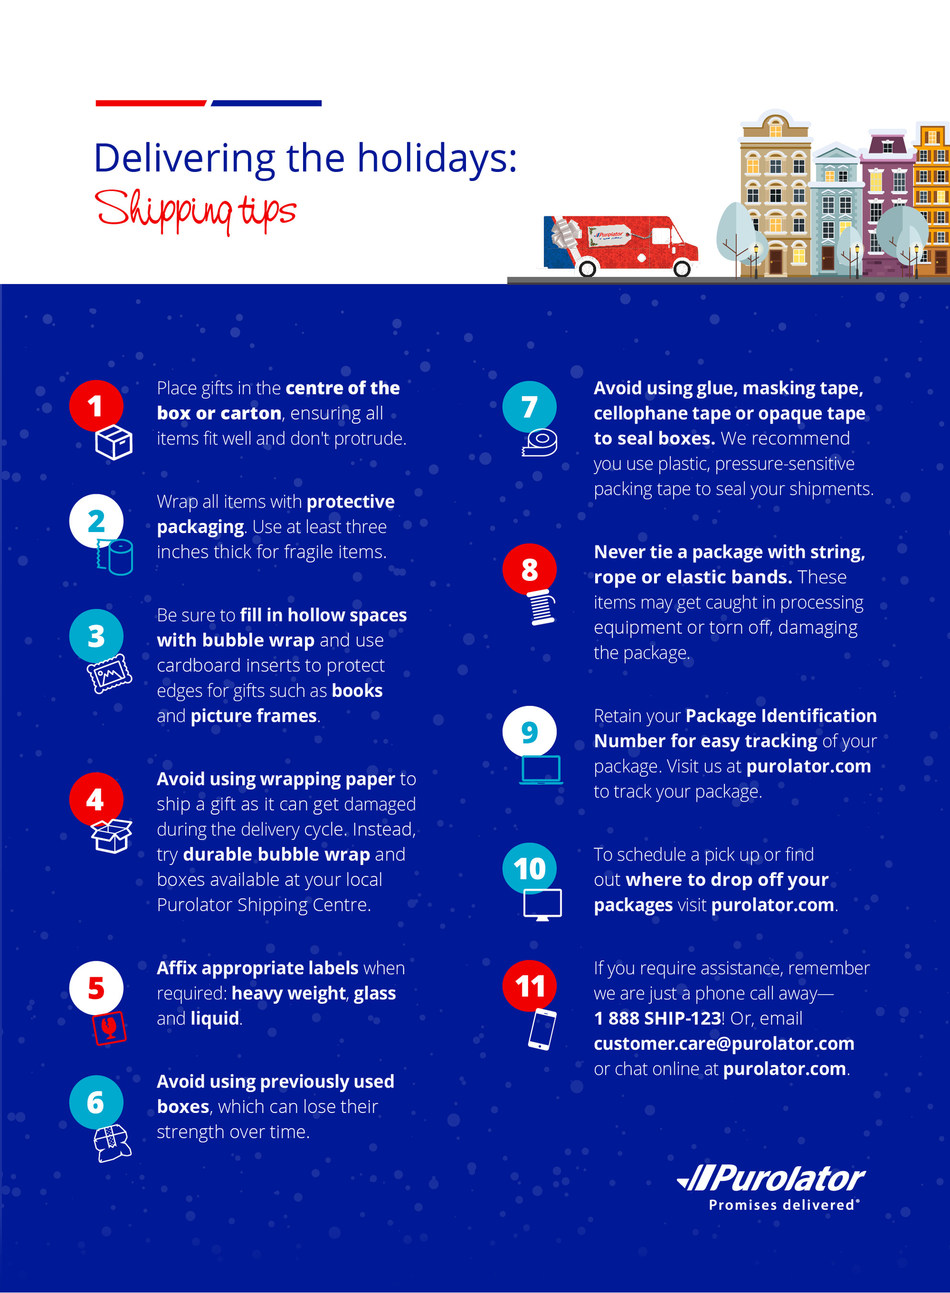 Delivering the holidays: Shipping tips (CNW Group/Purolator Inc.)